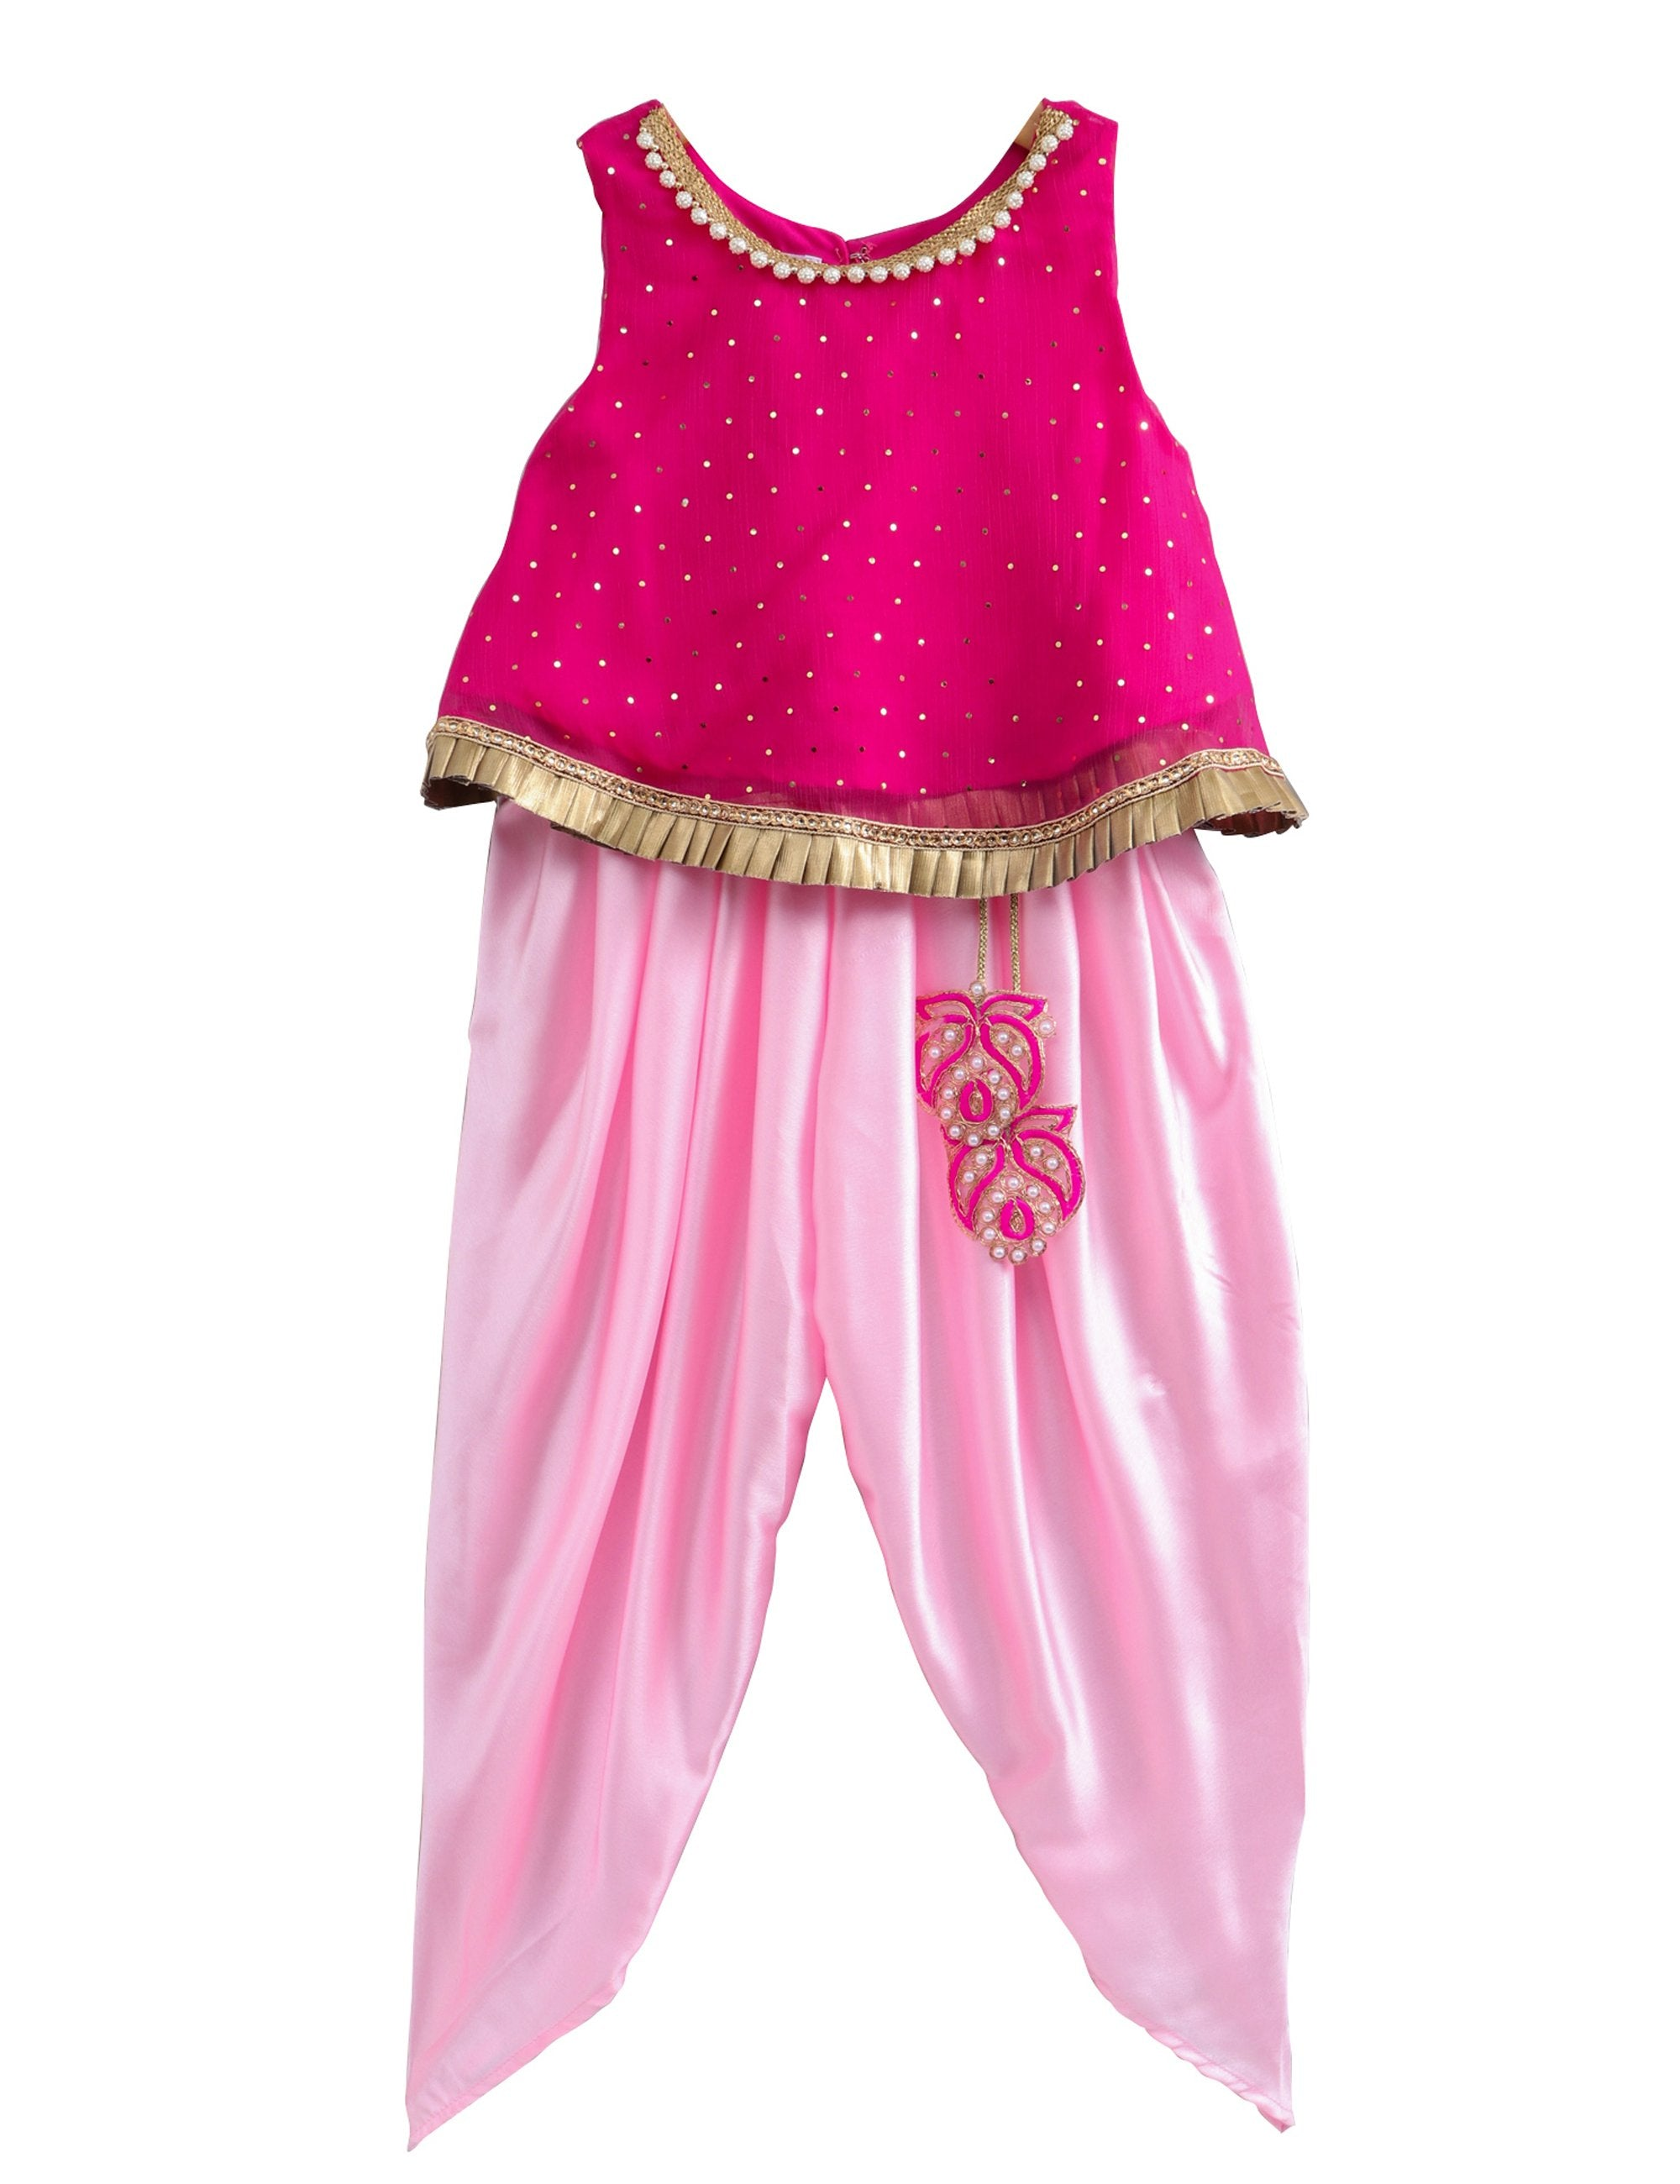 Shimmer Top with Bead Embellishment with Satin Dhoti and Latkans